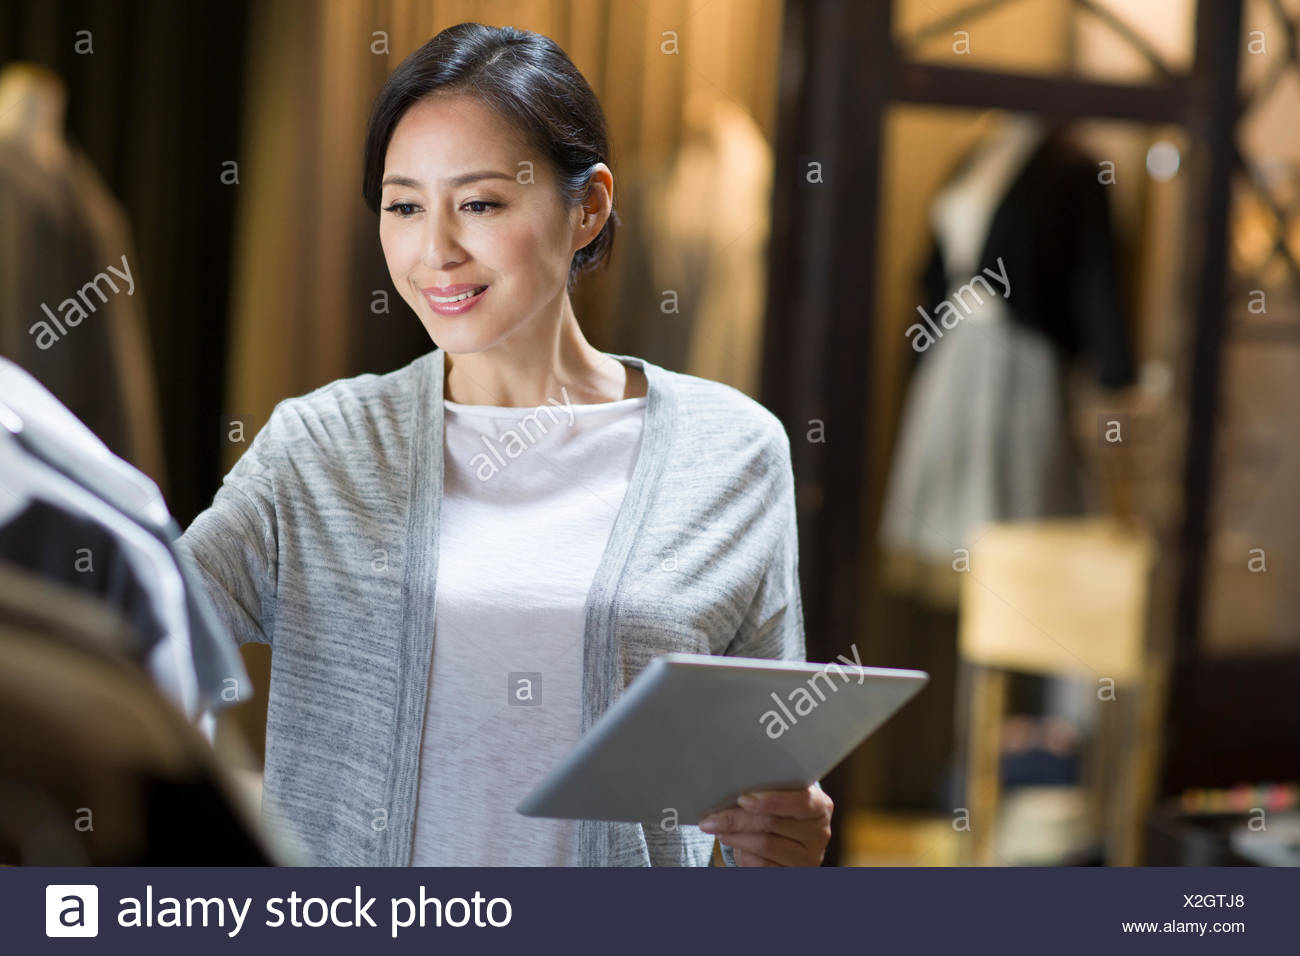 Clothing store owner with digital tablet - Stock Image